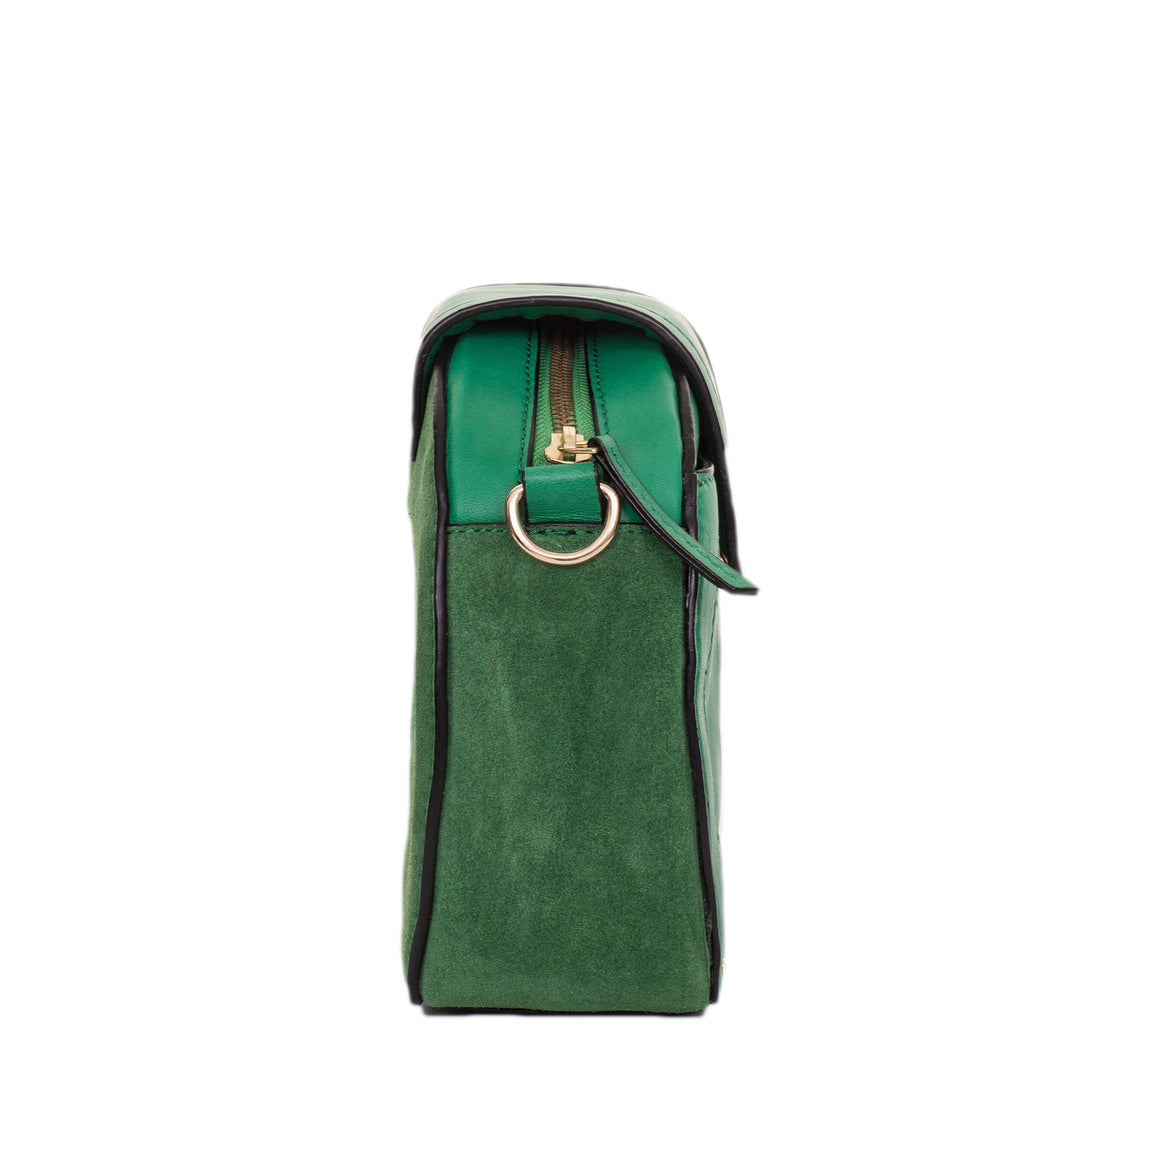 Melly Leather Bag for Women in Jelly Bean Green